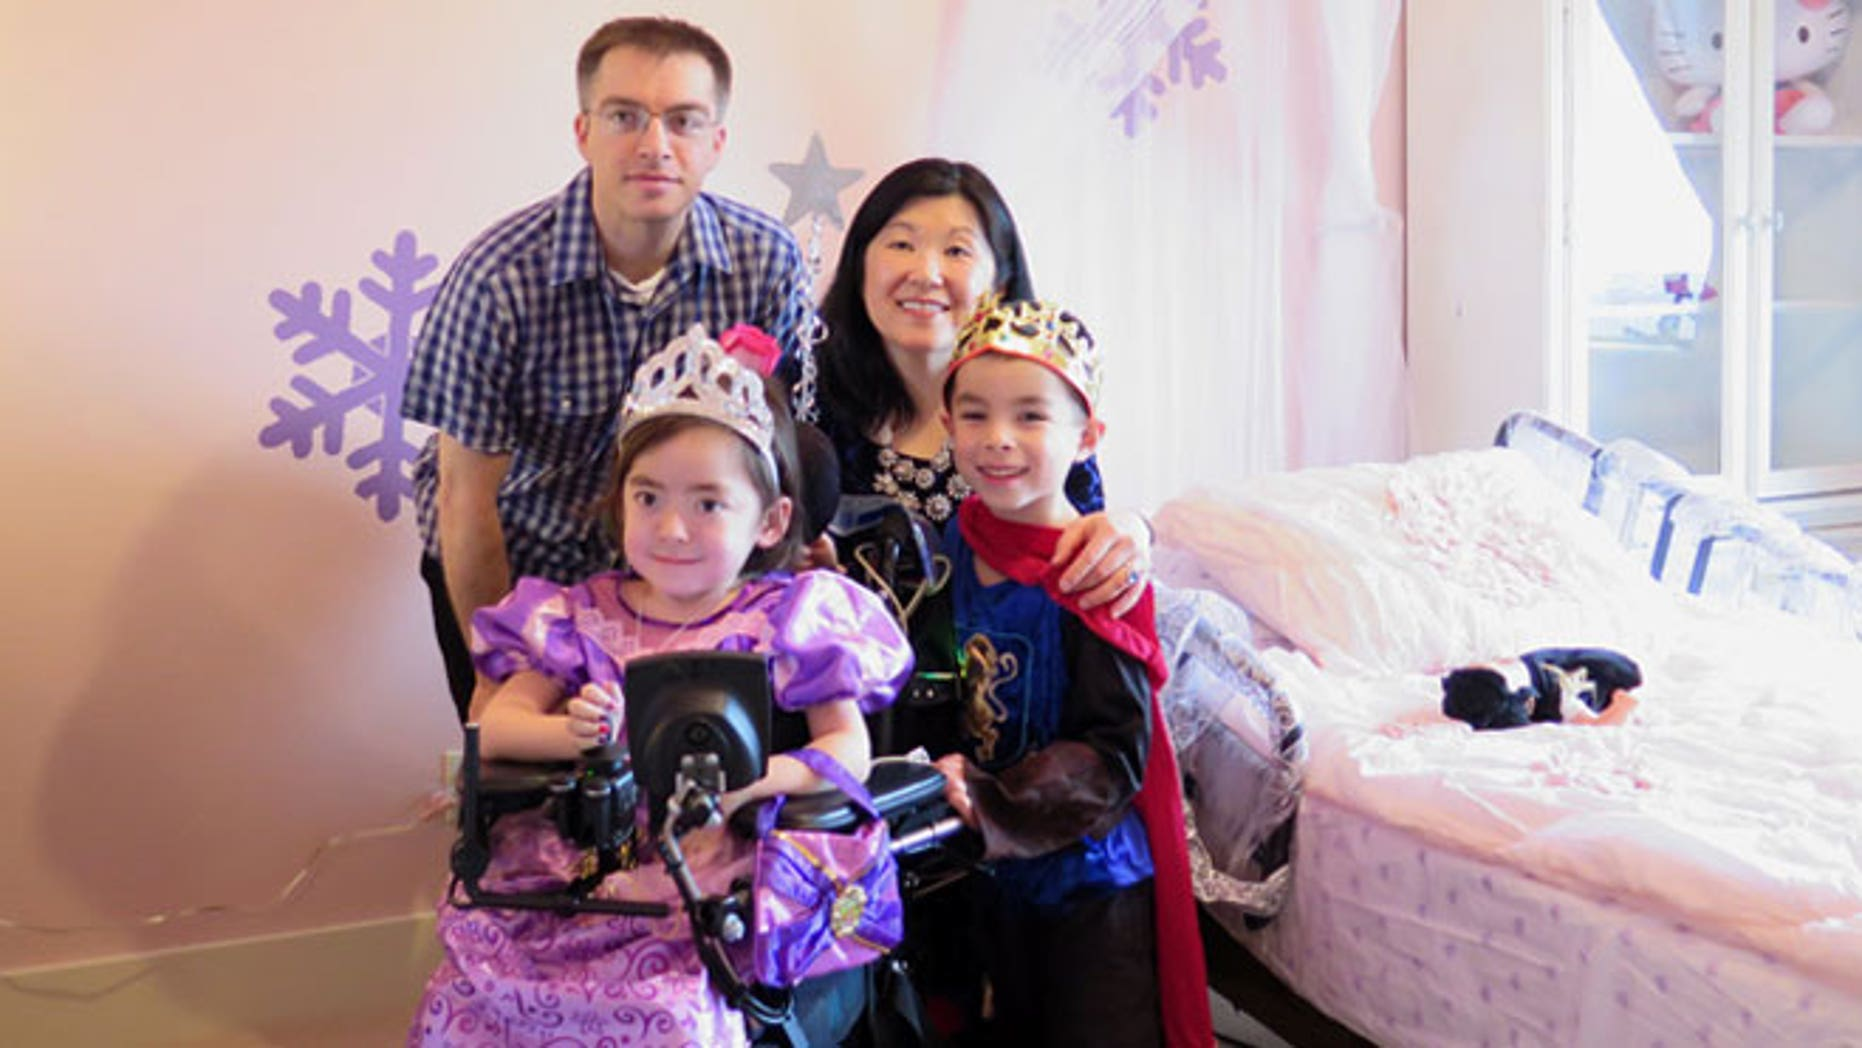 Julianna Snow, 5— pictured here with her father, Steve, her mother, Michelle Moon, and her older brother, Alex— suffers from a severe form of the inherited condition Charcot-Marie-Tooth disease, or CMT, that makes it impossible to eat on her own, play or walk. Her family told her at age 4 that the next time she got seriously ill, she could choose to either stay home and go to heaven or go back to the hospital.